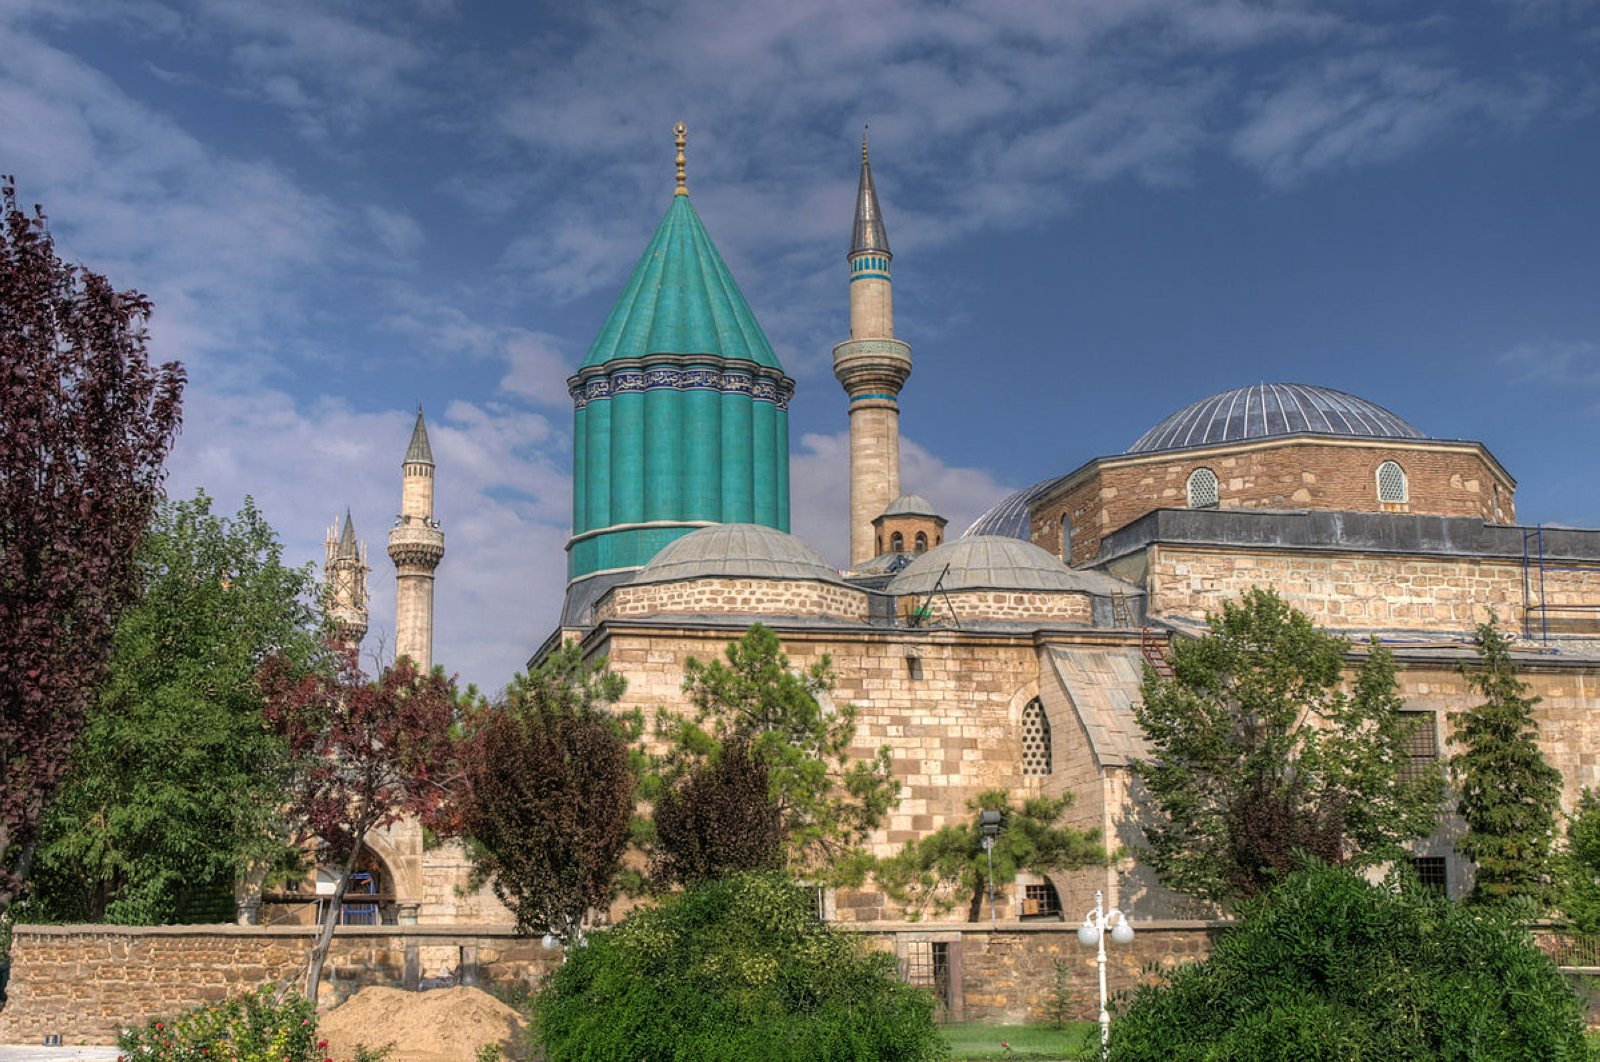 The shrine of Rumi in central Konya province comes to the forefront with its distinctive green-tiled cylindrical dome.